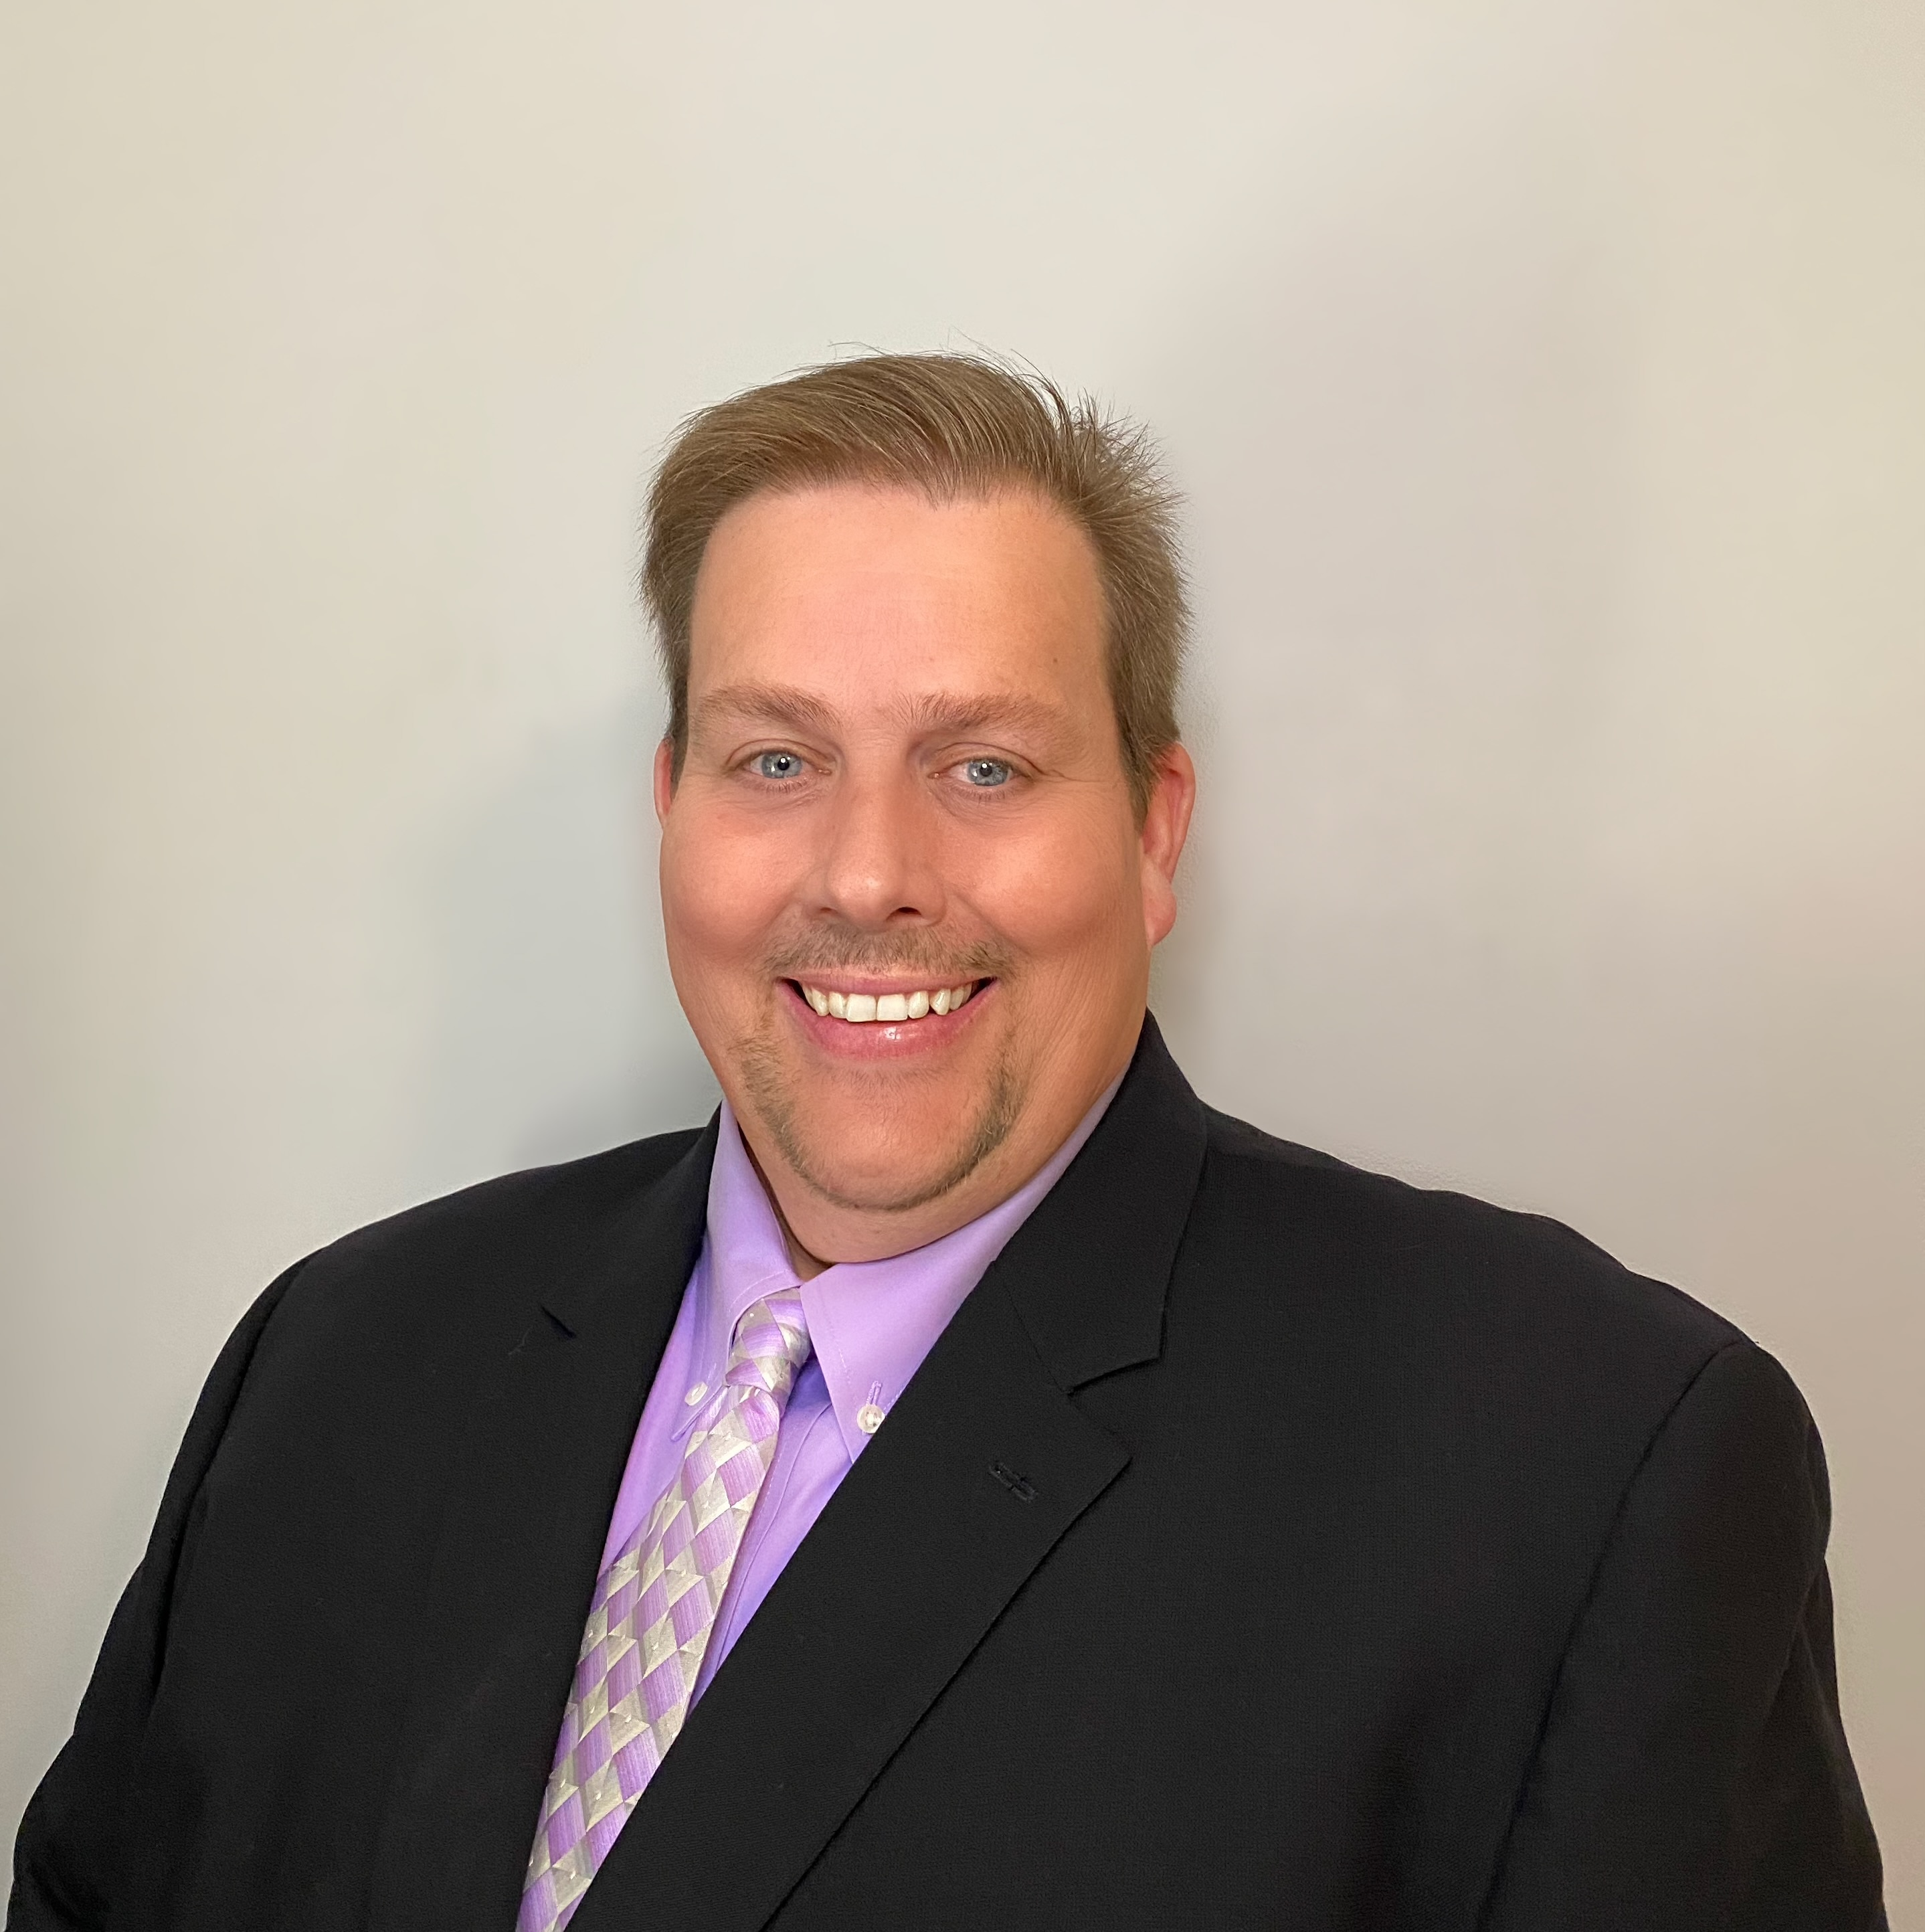 CHAD HALL Financial Professional & Insurance Agent